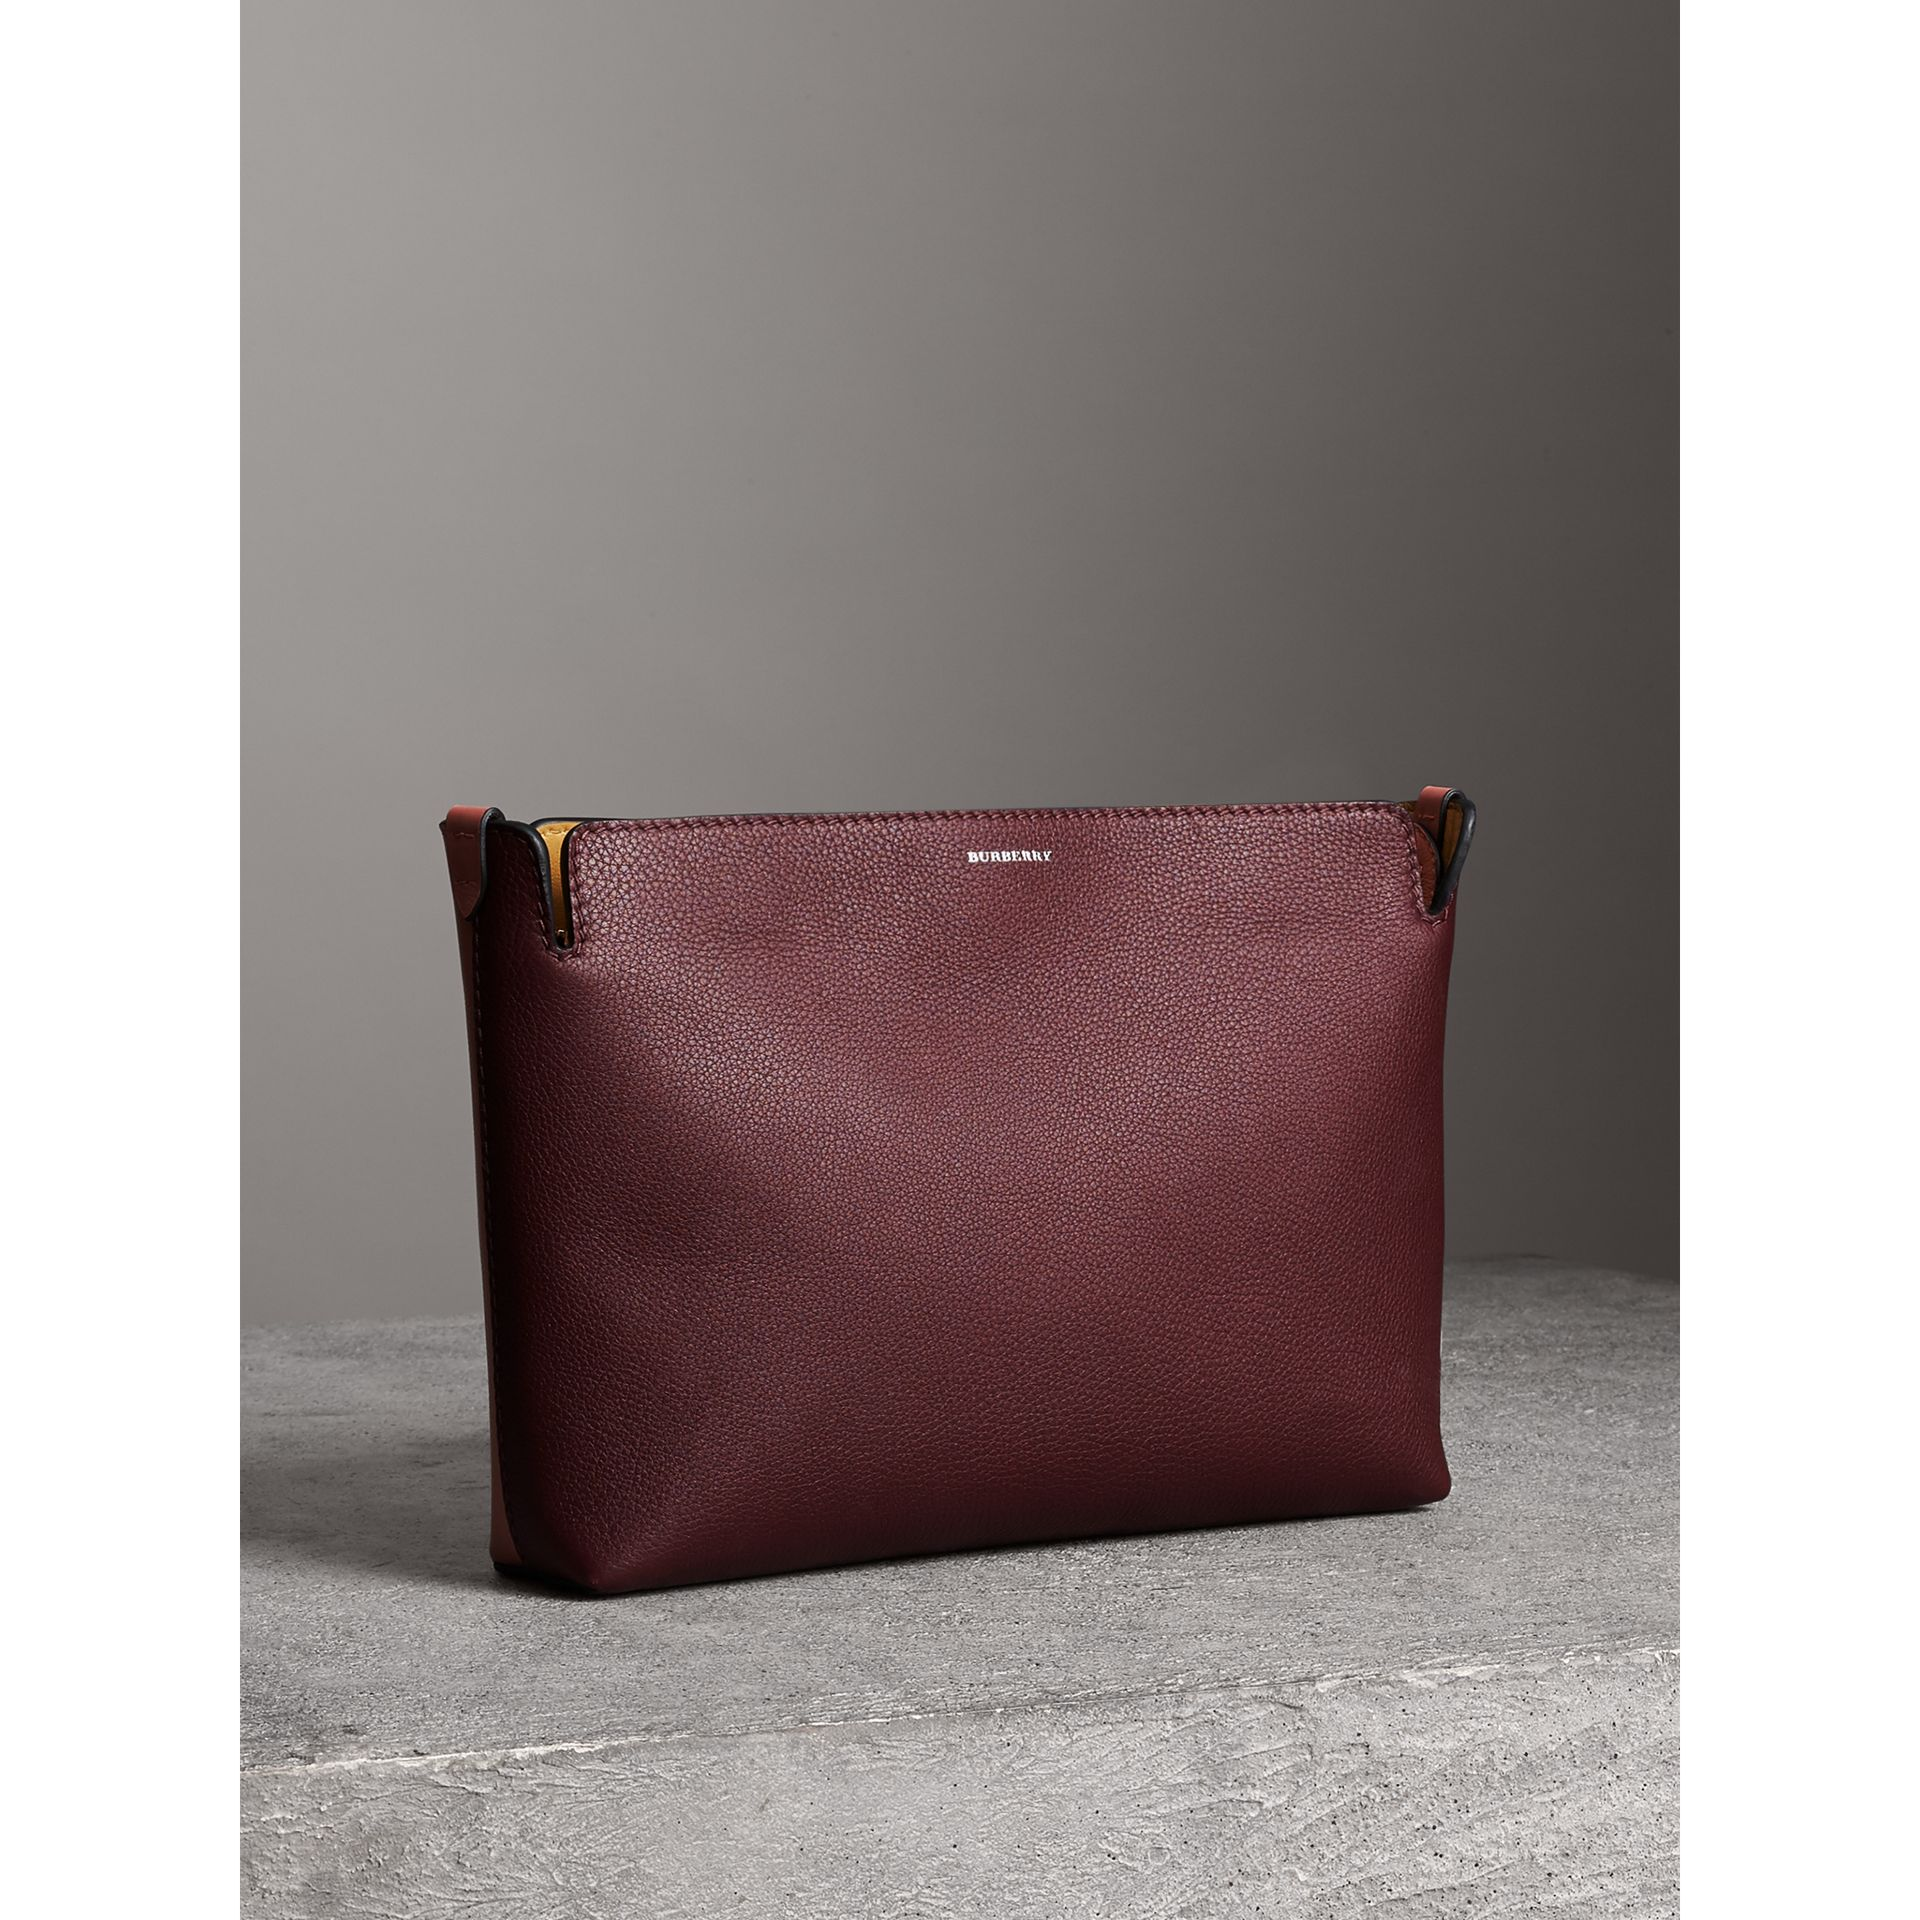 Medium Tri-tone Leather Clutch in Deep Claret/dusty Rose | Burberry - gallery image 6